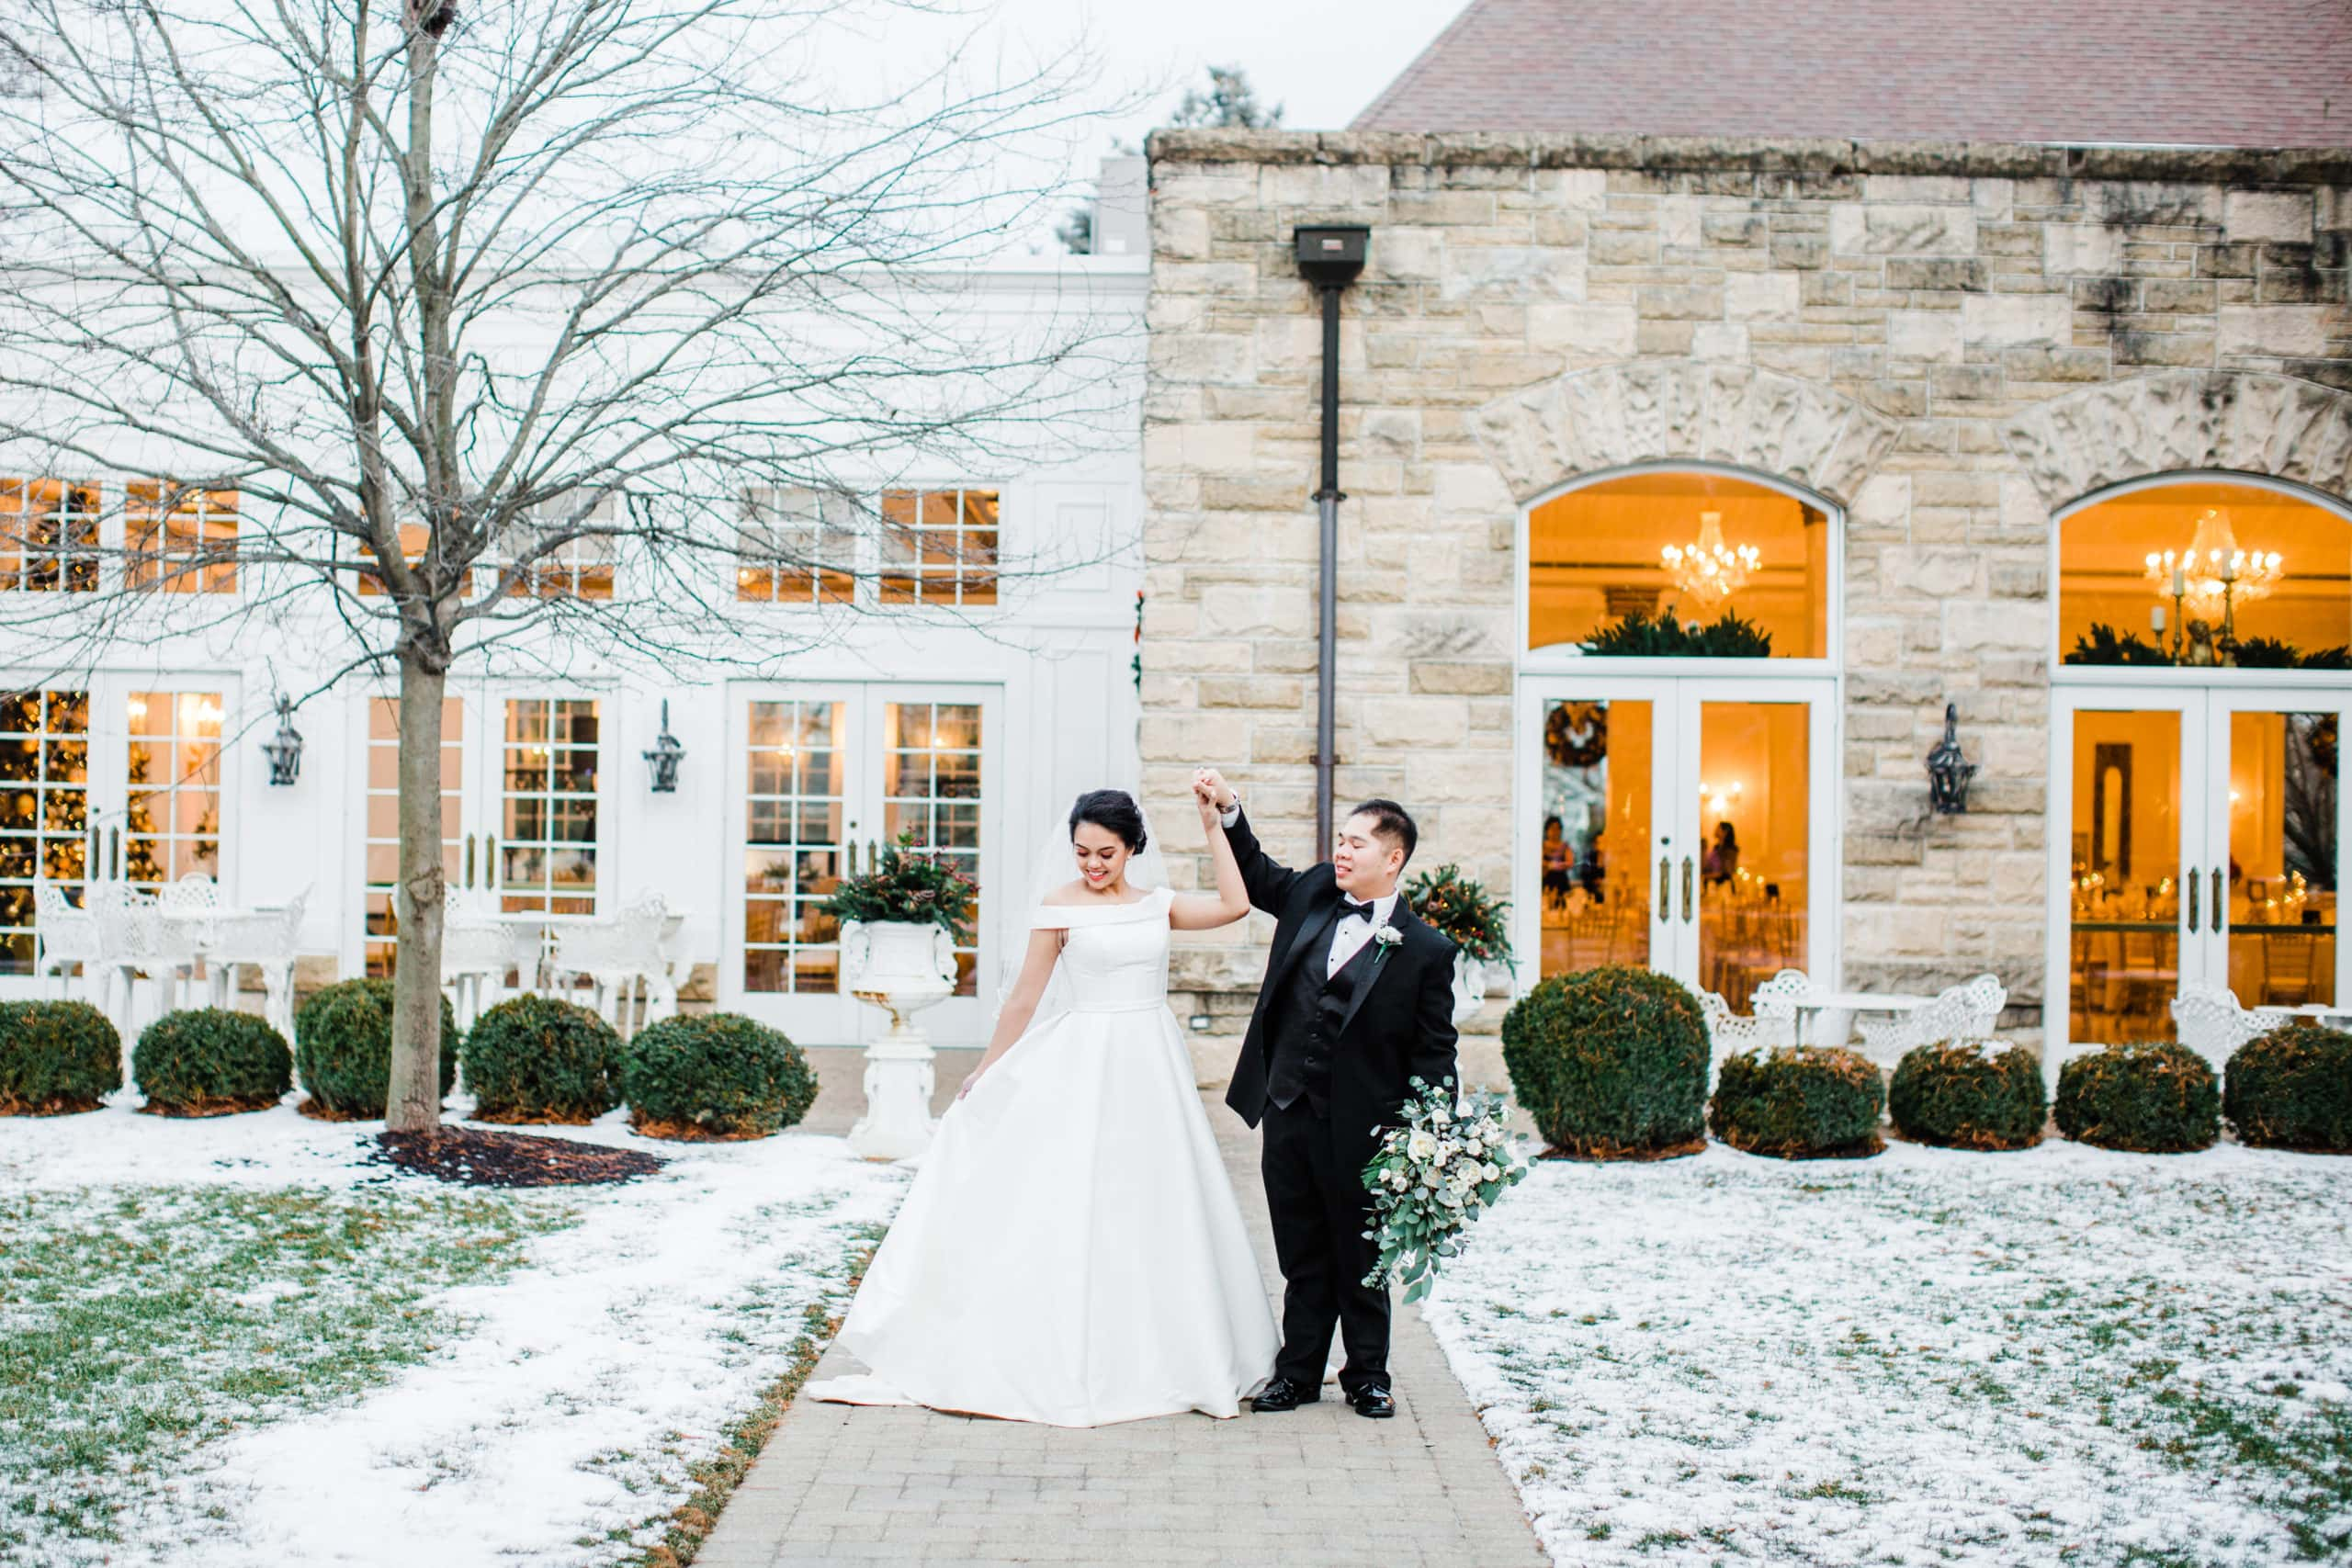 bozena_voytkoChicago weddding photographer Haley Mansion Winter Wedding